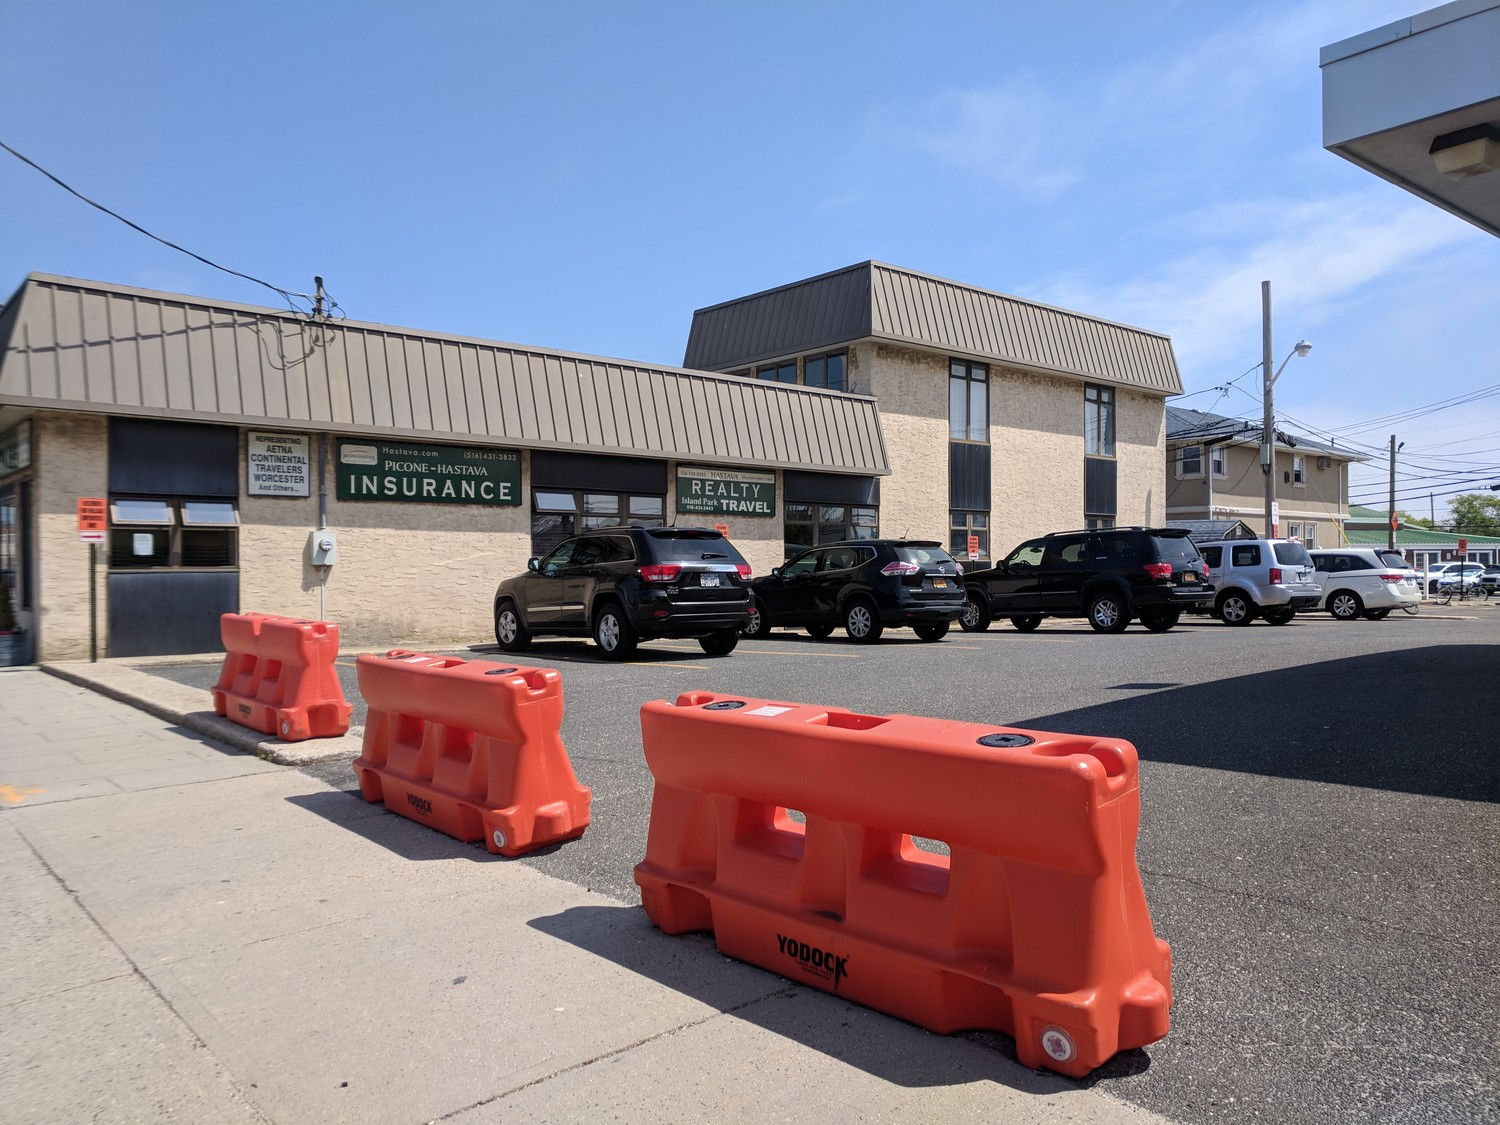 When Island Park's Village Hall relocated to the former Bank of America building on Long Beach Road last September, it took over roughly 20 parking spaces that had been available to shoppers.